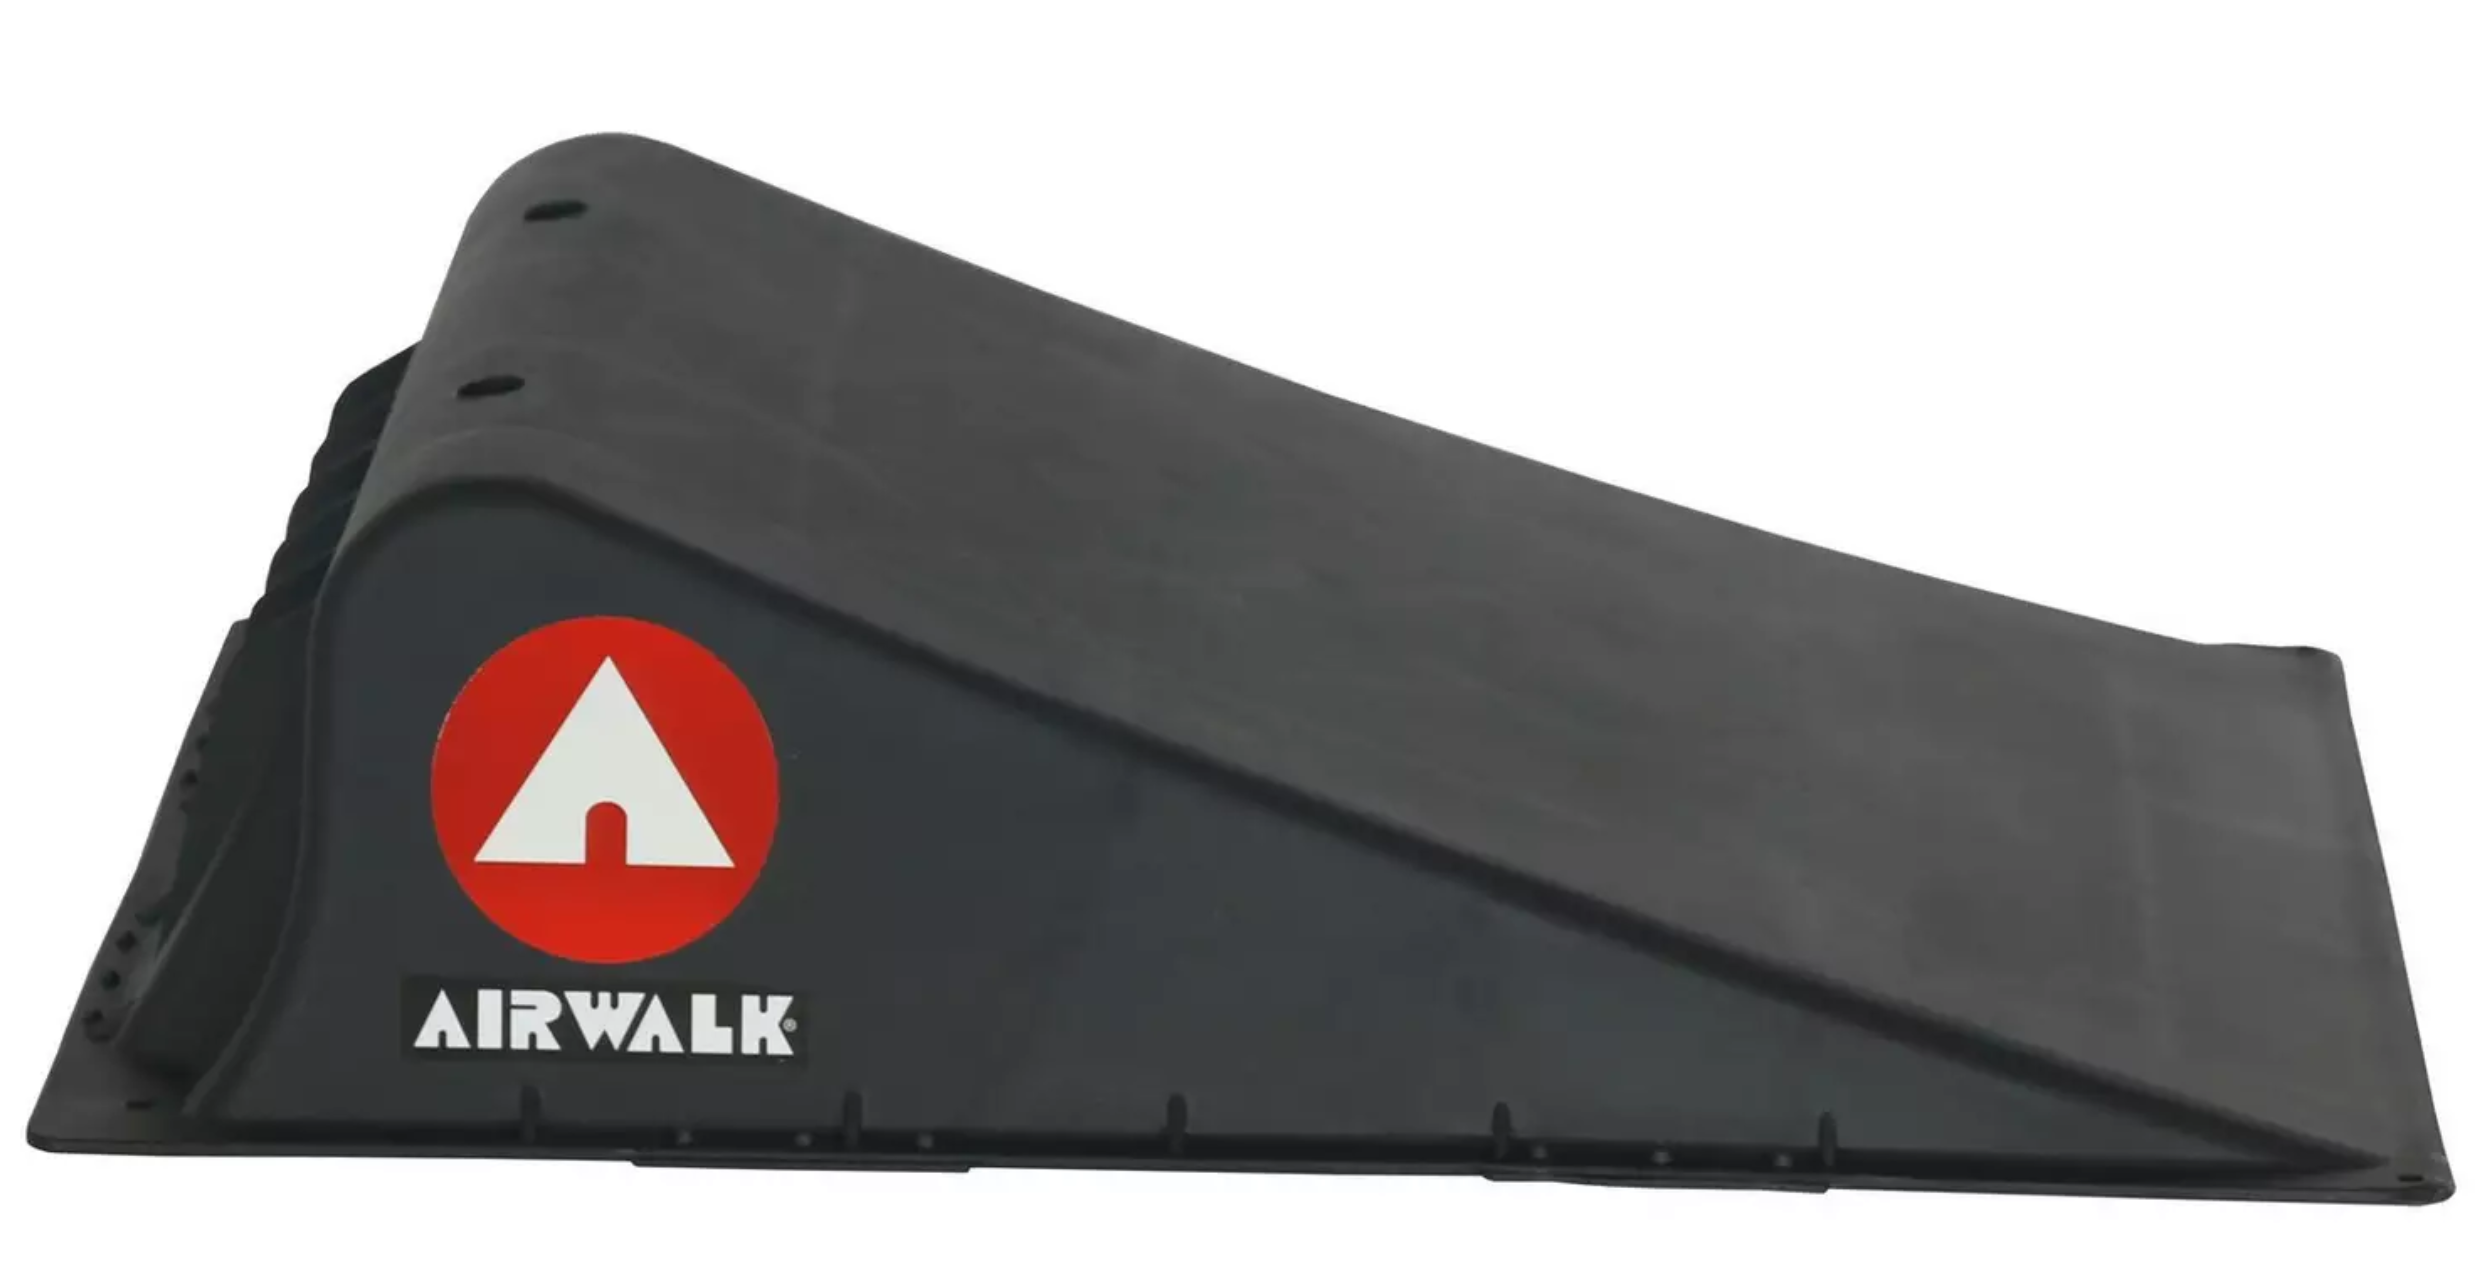 small airwalk ramp for use by kids on scooters and skateboards